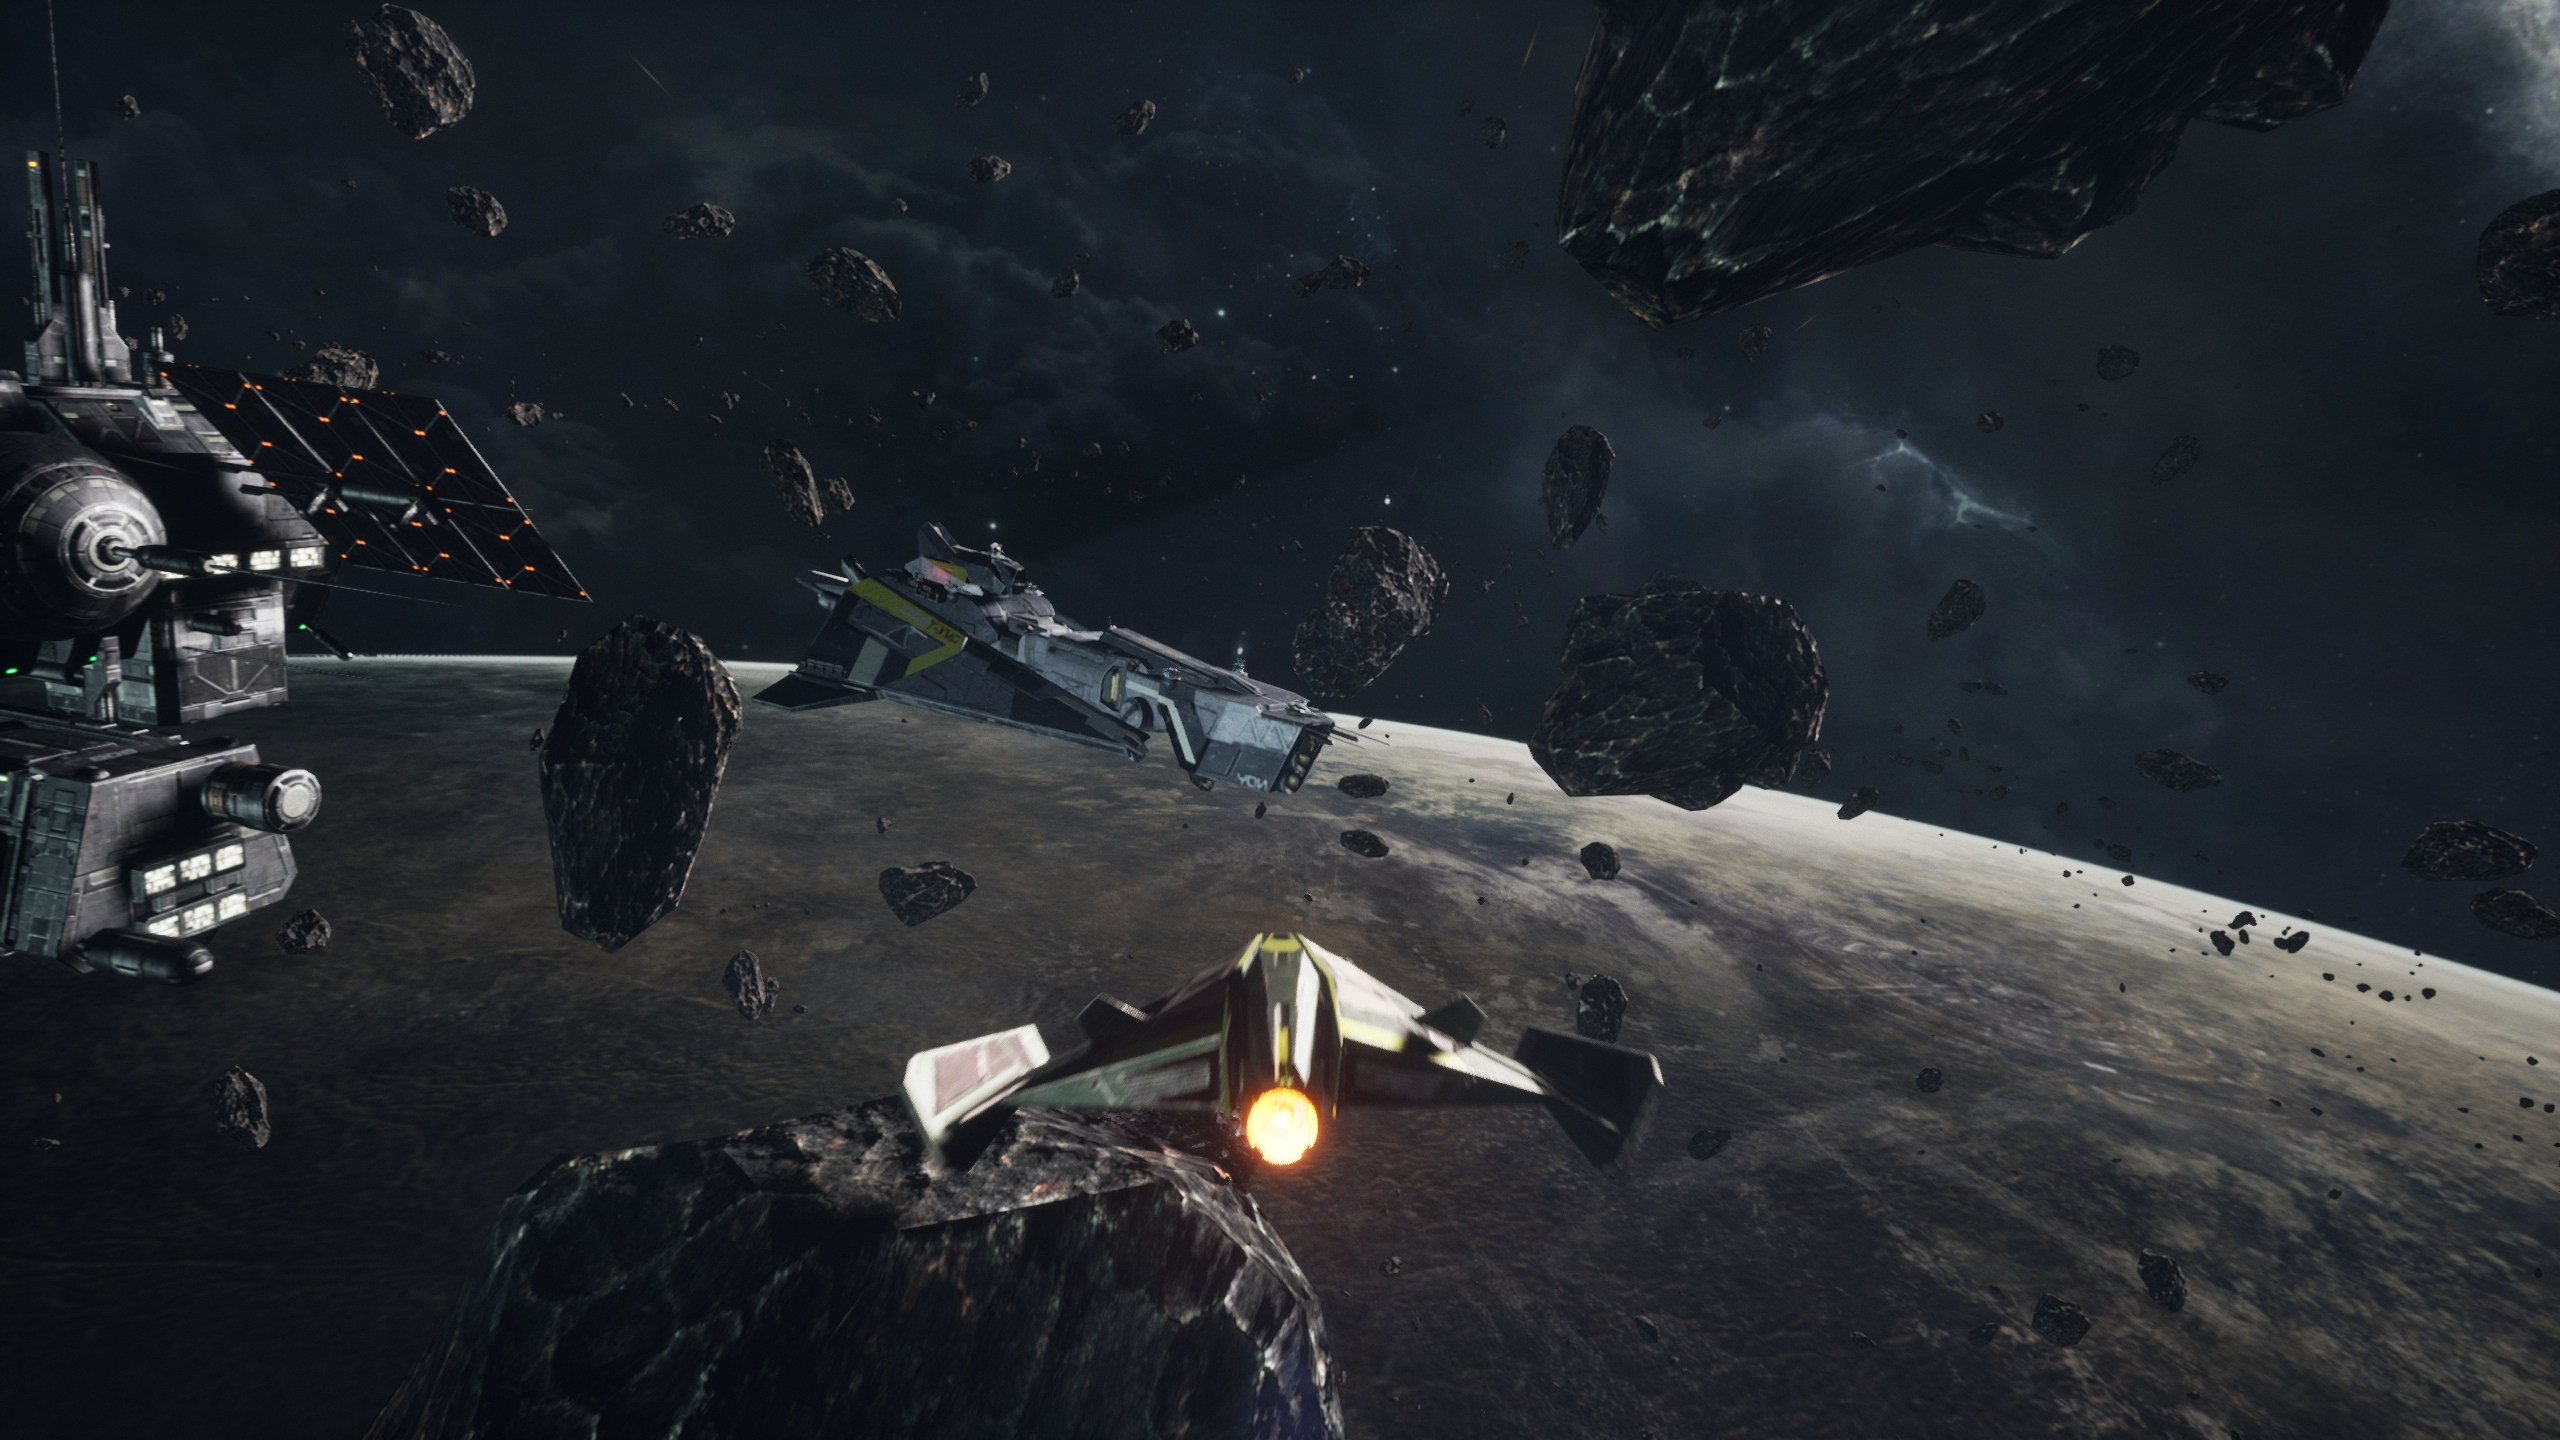 subdivision-infinity-dx-takes-off-on-consoles3-pc-in-early-2019-frikigamers.com.jpg